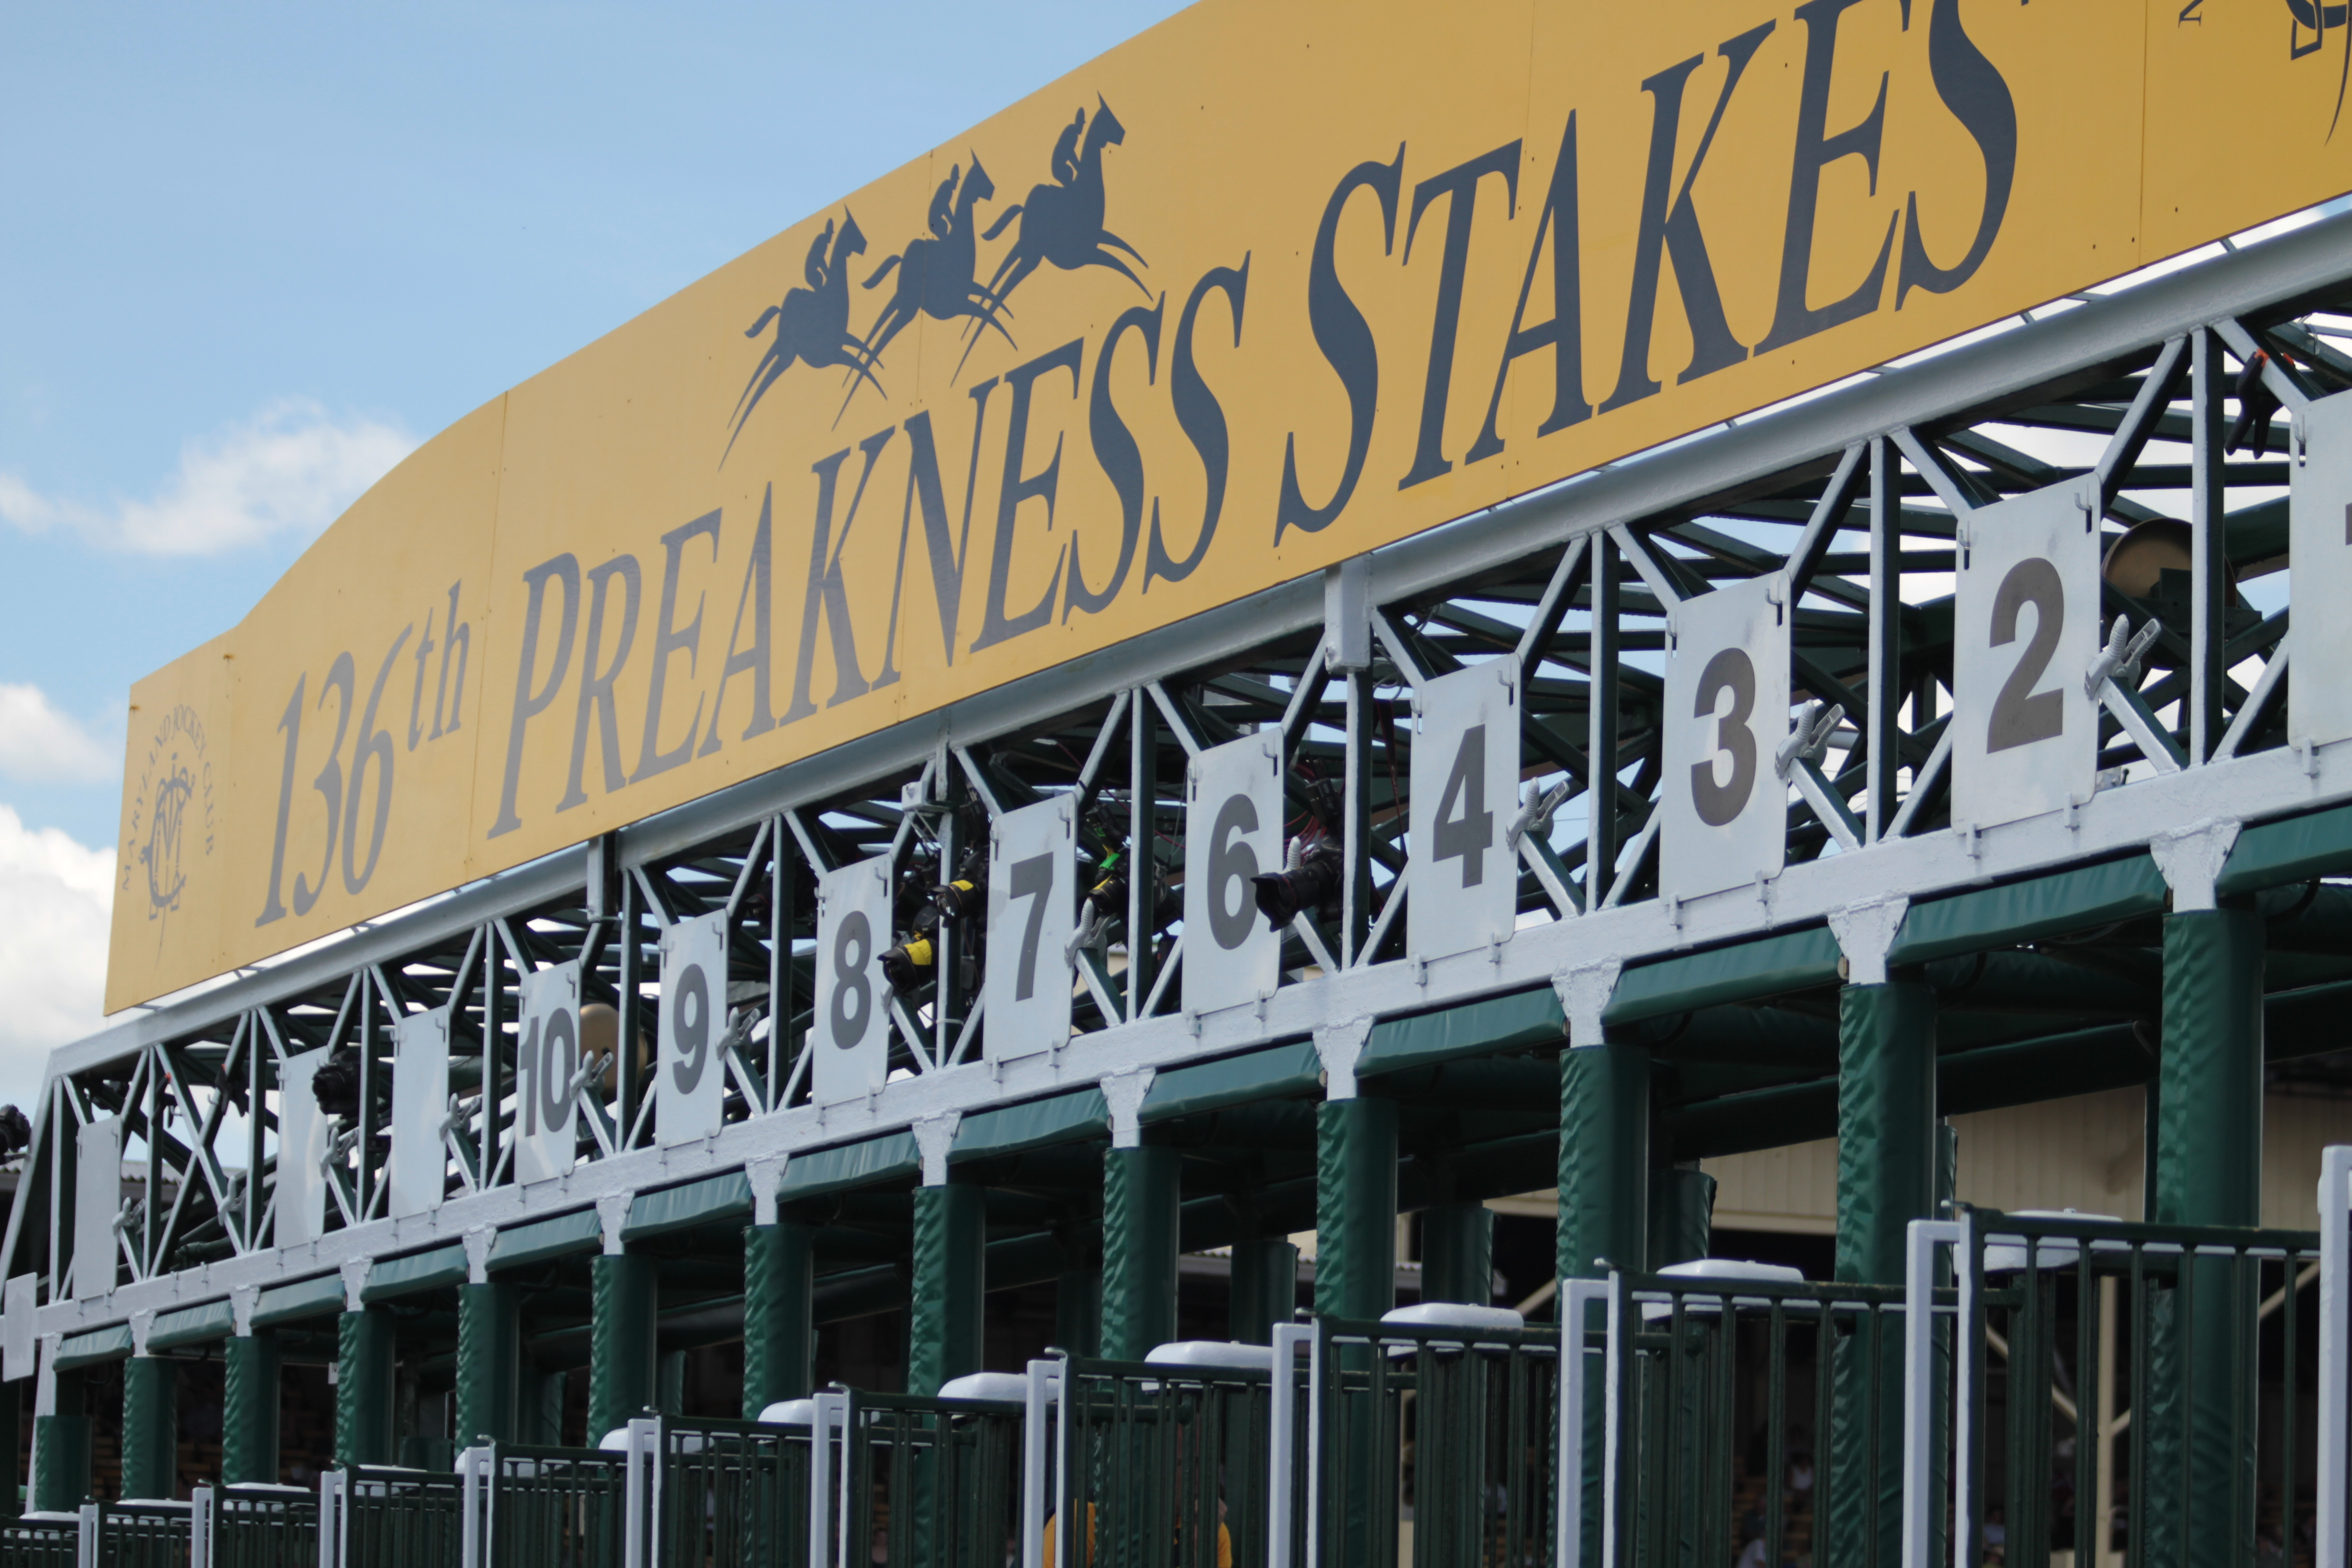 History Of Preakness Stakes